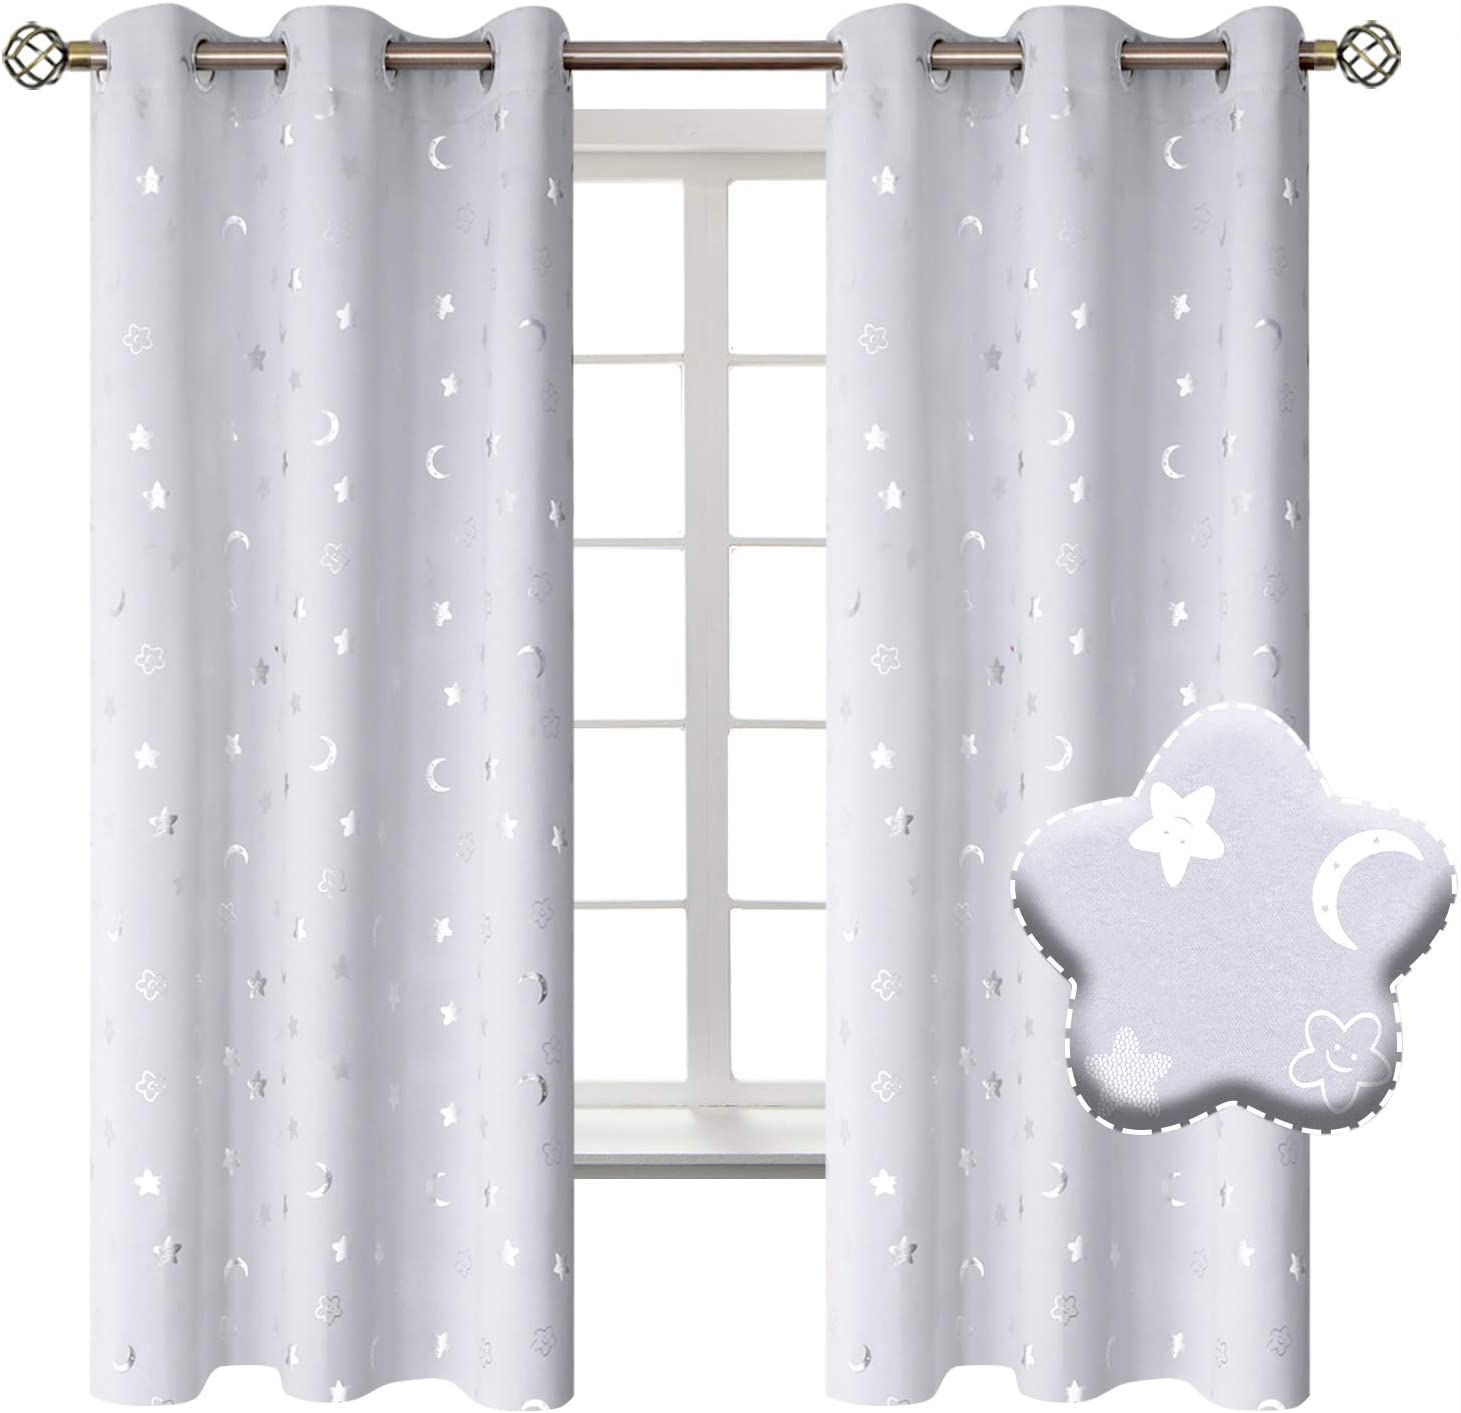 BGment Moon and Stars Blackout Curtains Kids High Mail order cheap material Gromme Bedroom for